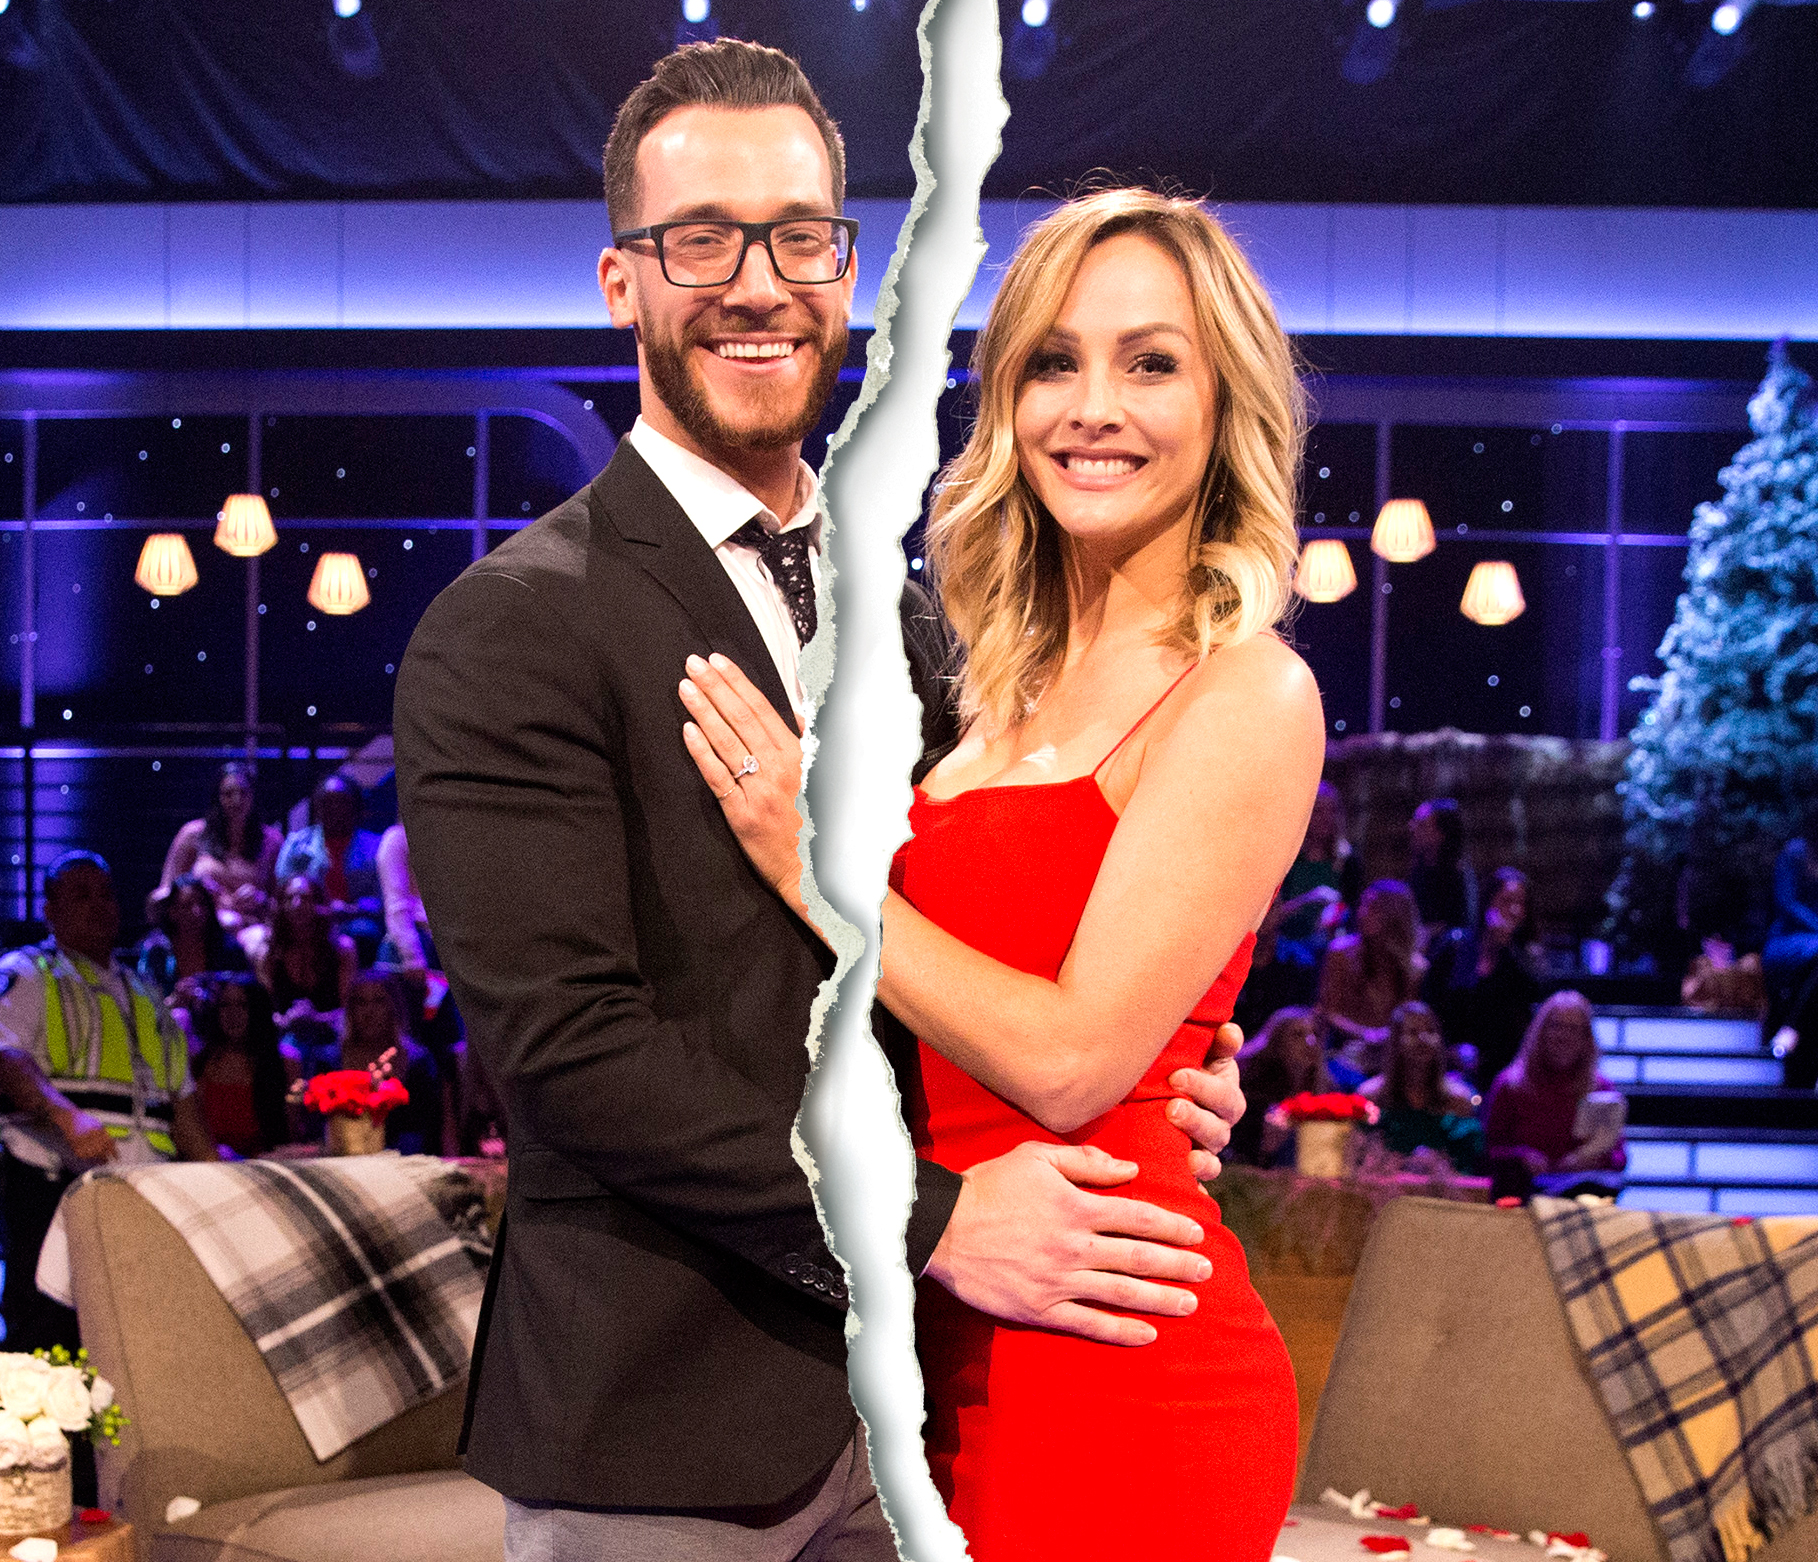 Bachelor Winter Games\' Clare Crawley, Benoit Beausejour-Savard Split